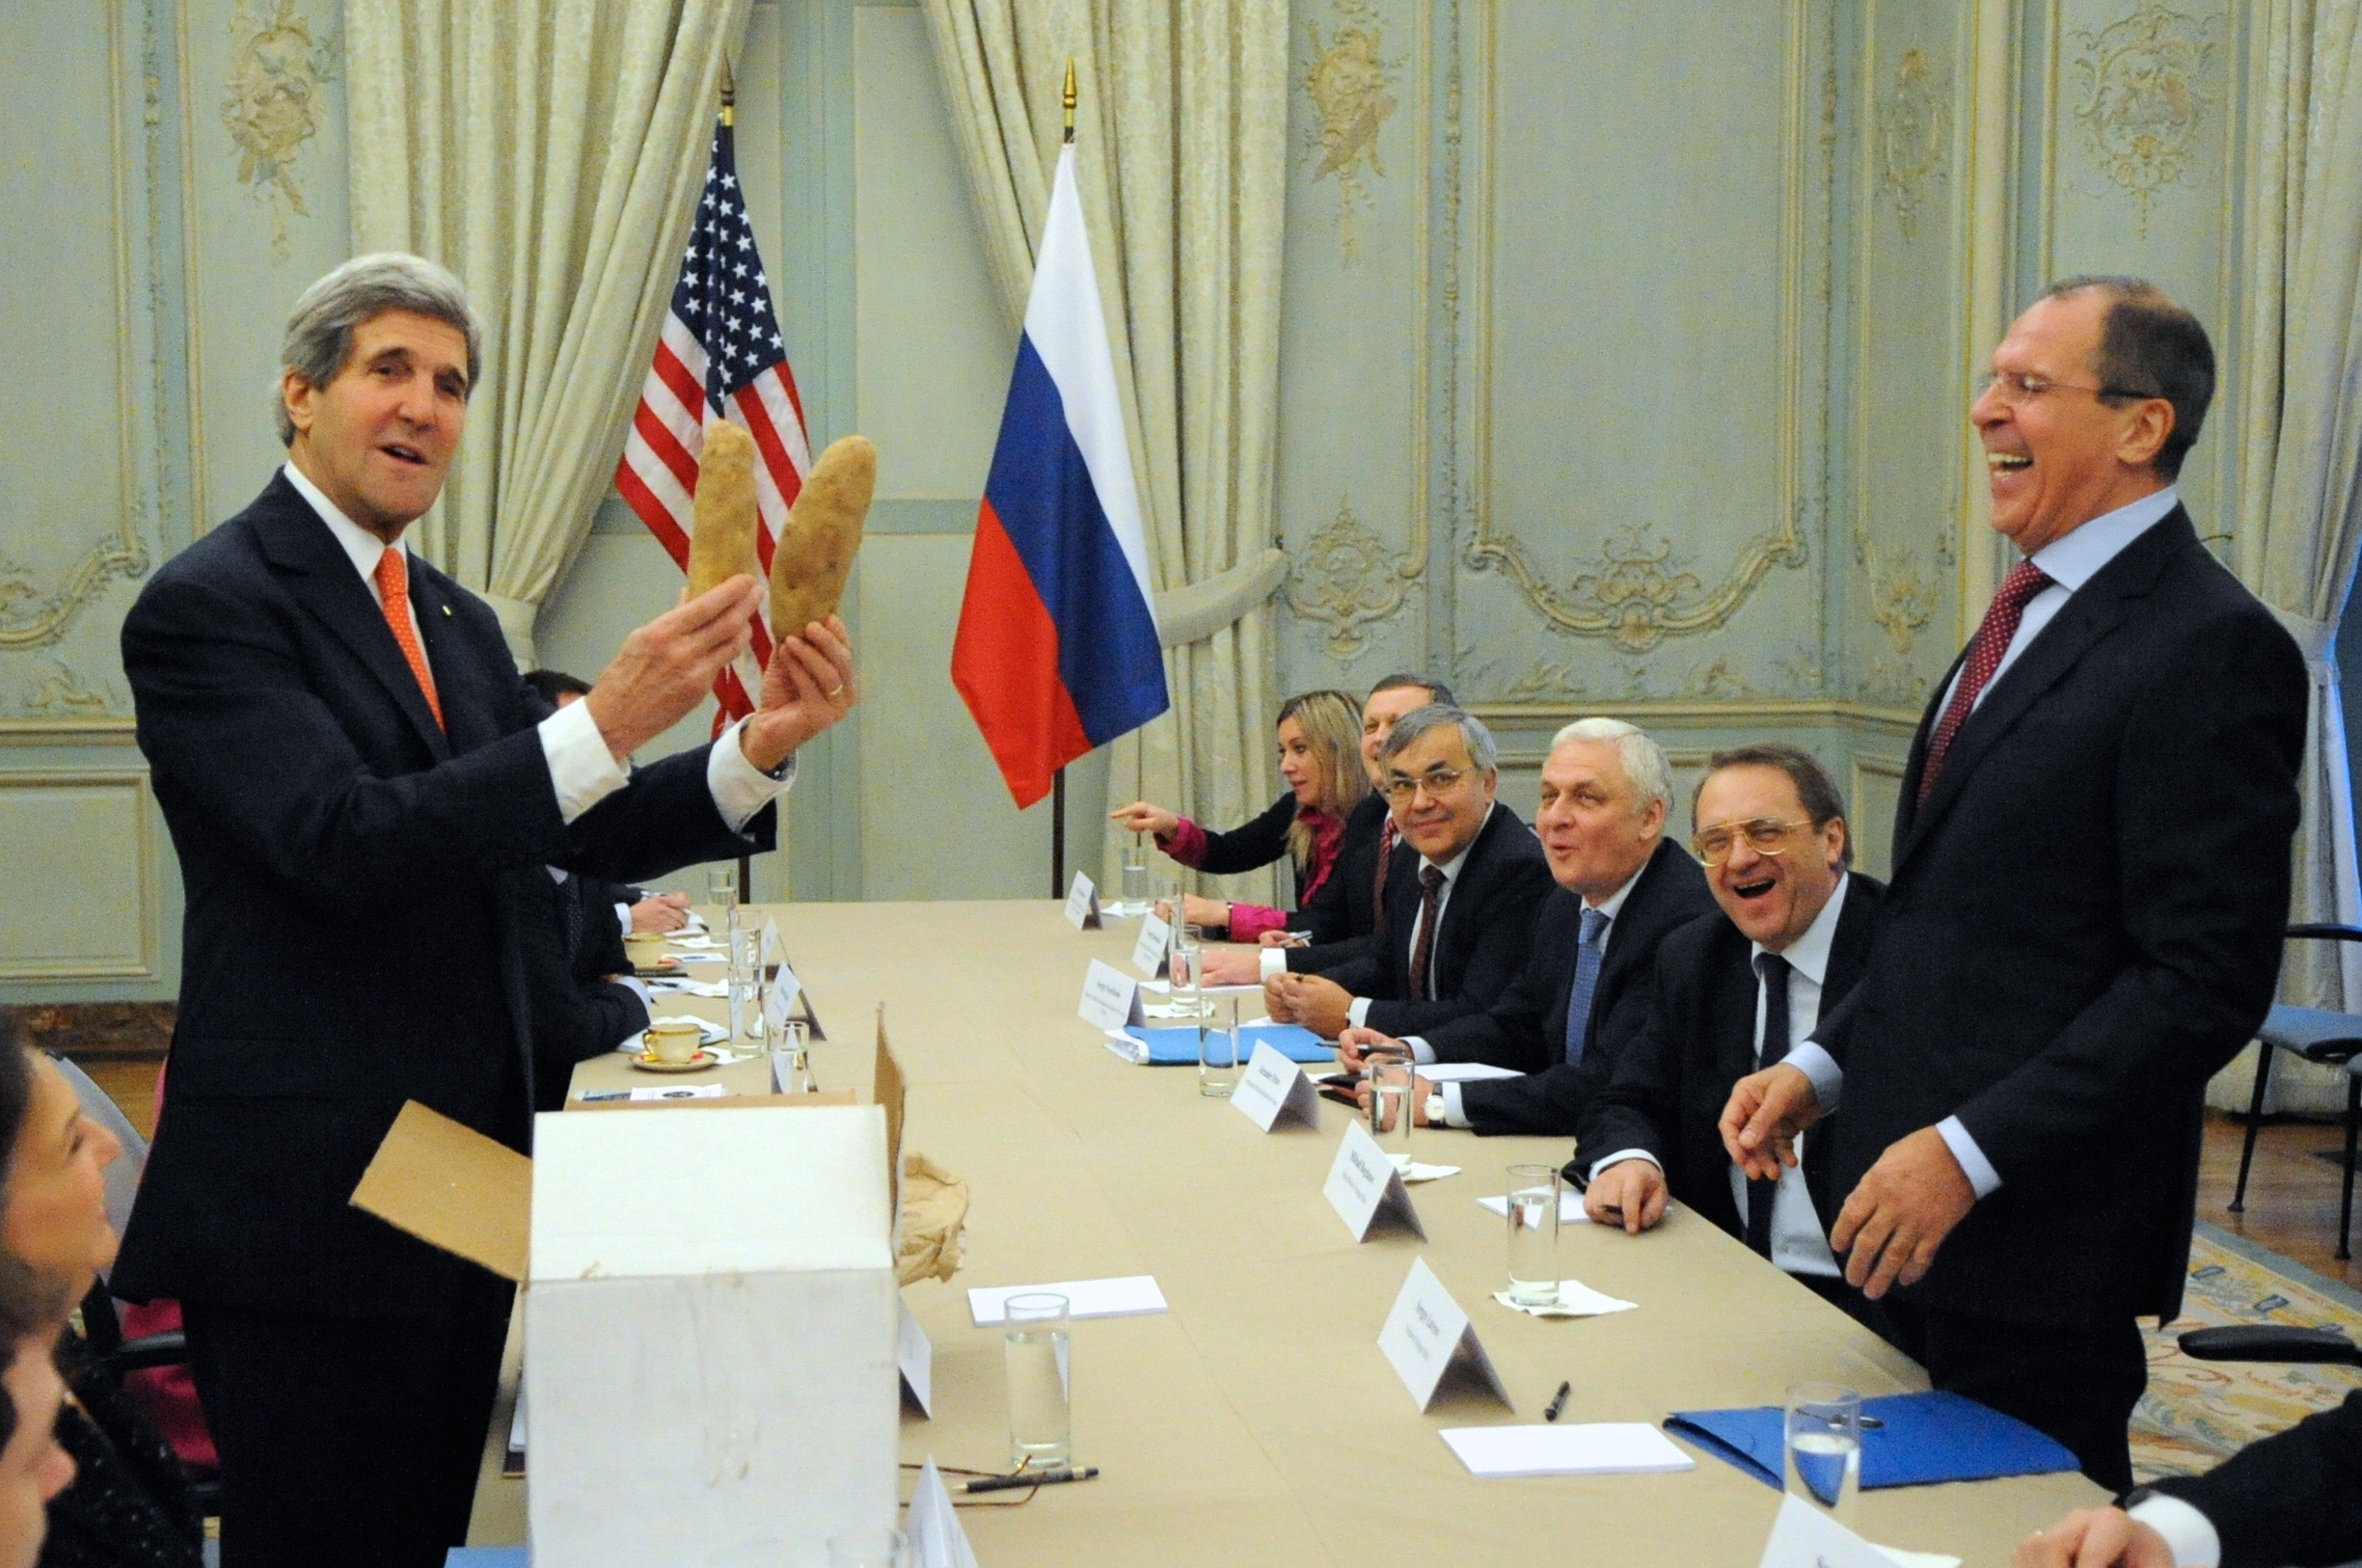 Secretary Kerry engages in potato diplomacy with Russian Foreign Minister Lavrov during a meeting in Paris.